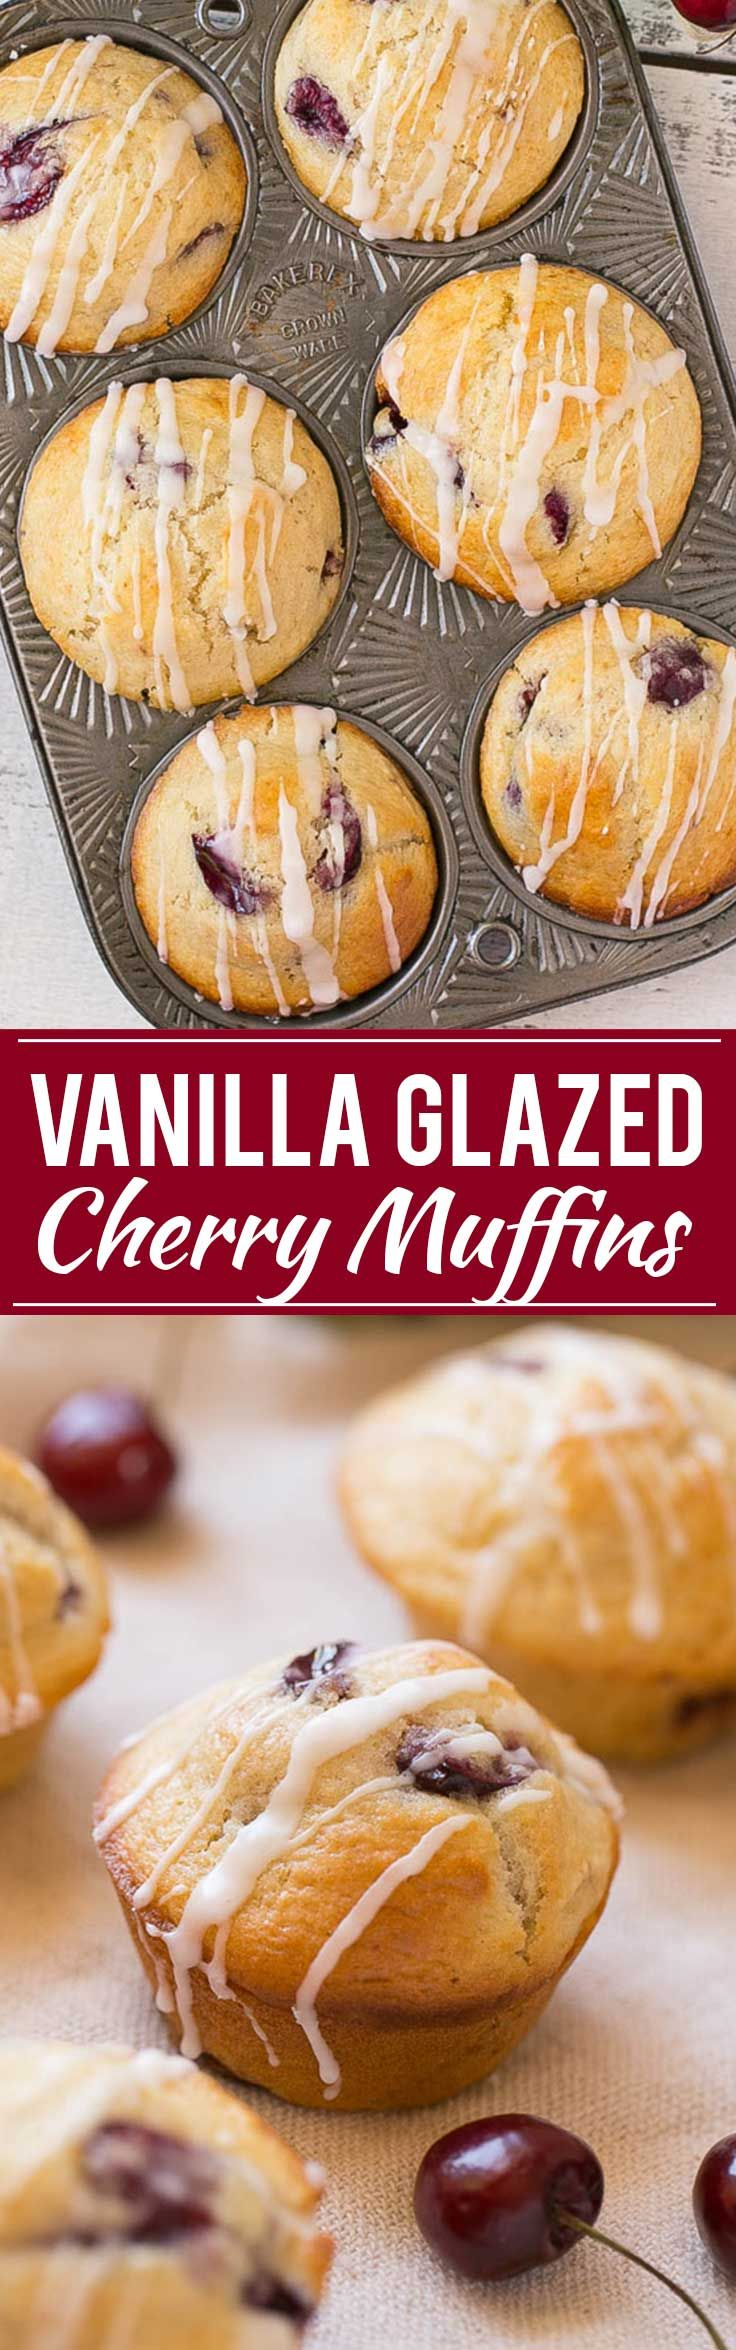 Glazed Cherry Muffins